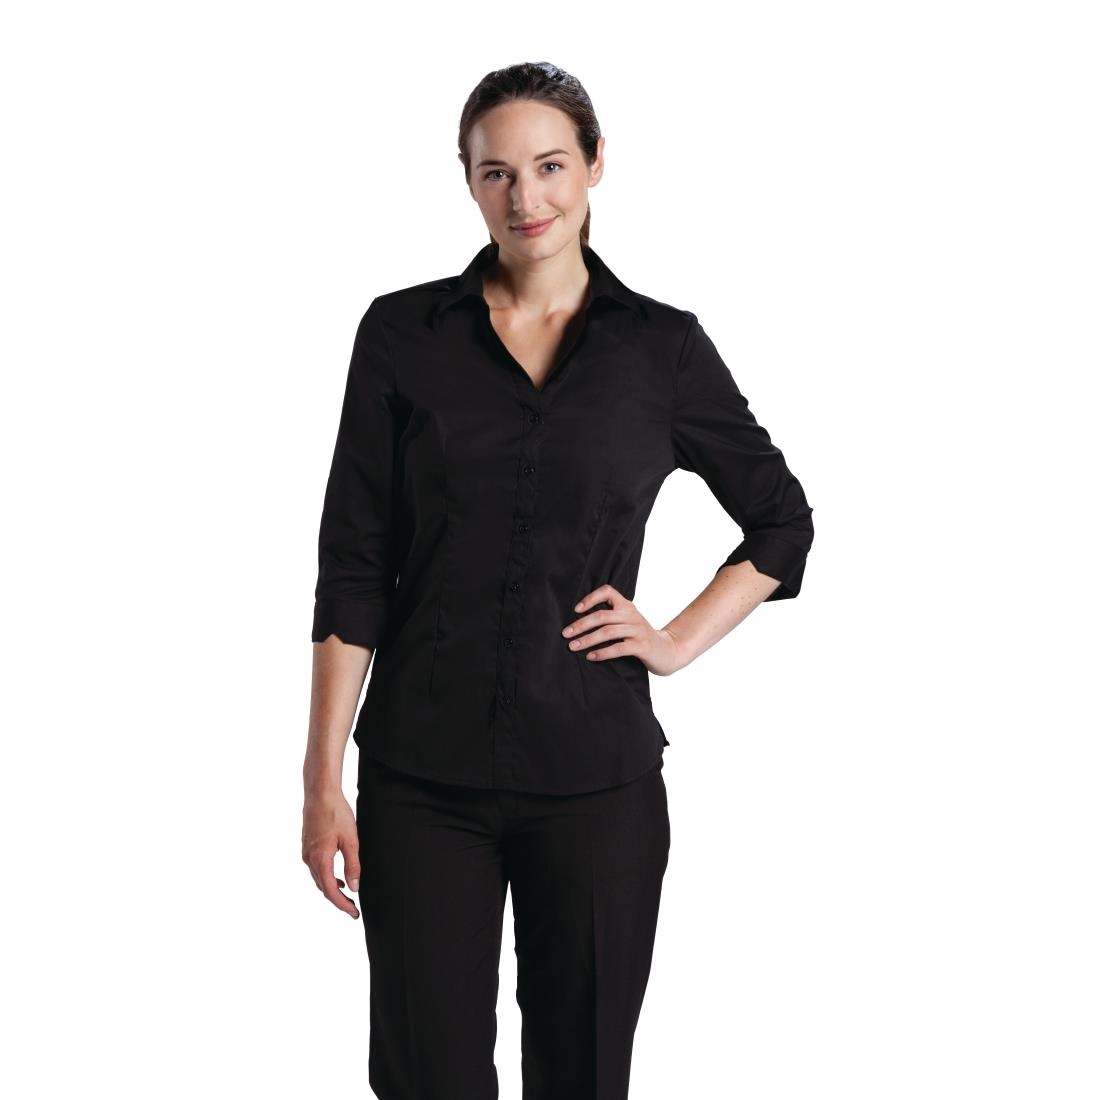 445f25333e5 Chef Works Womens Stretch Shirt Black - P B314 - Buy Online at Nisbets